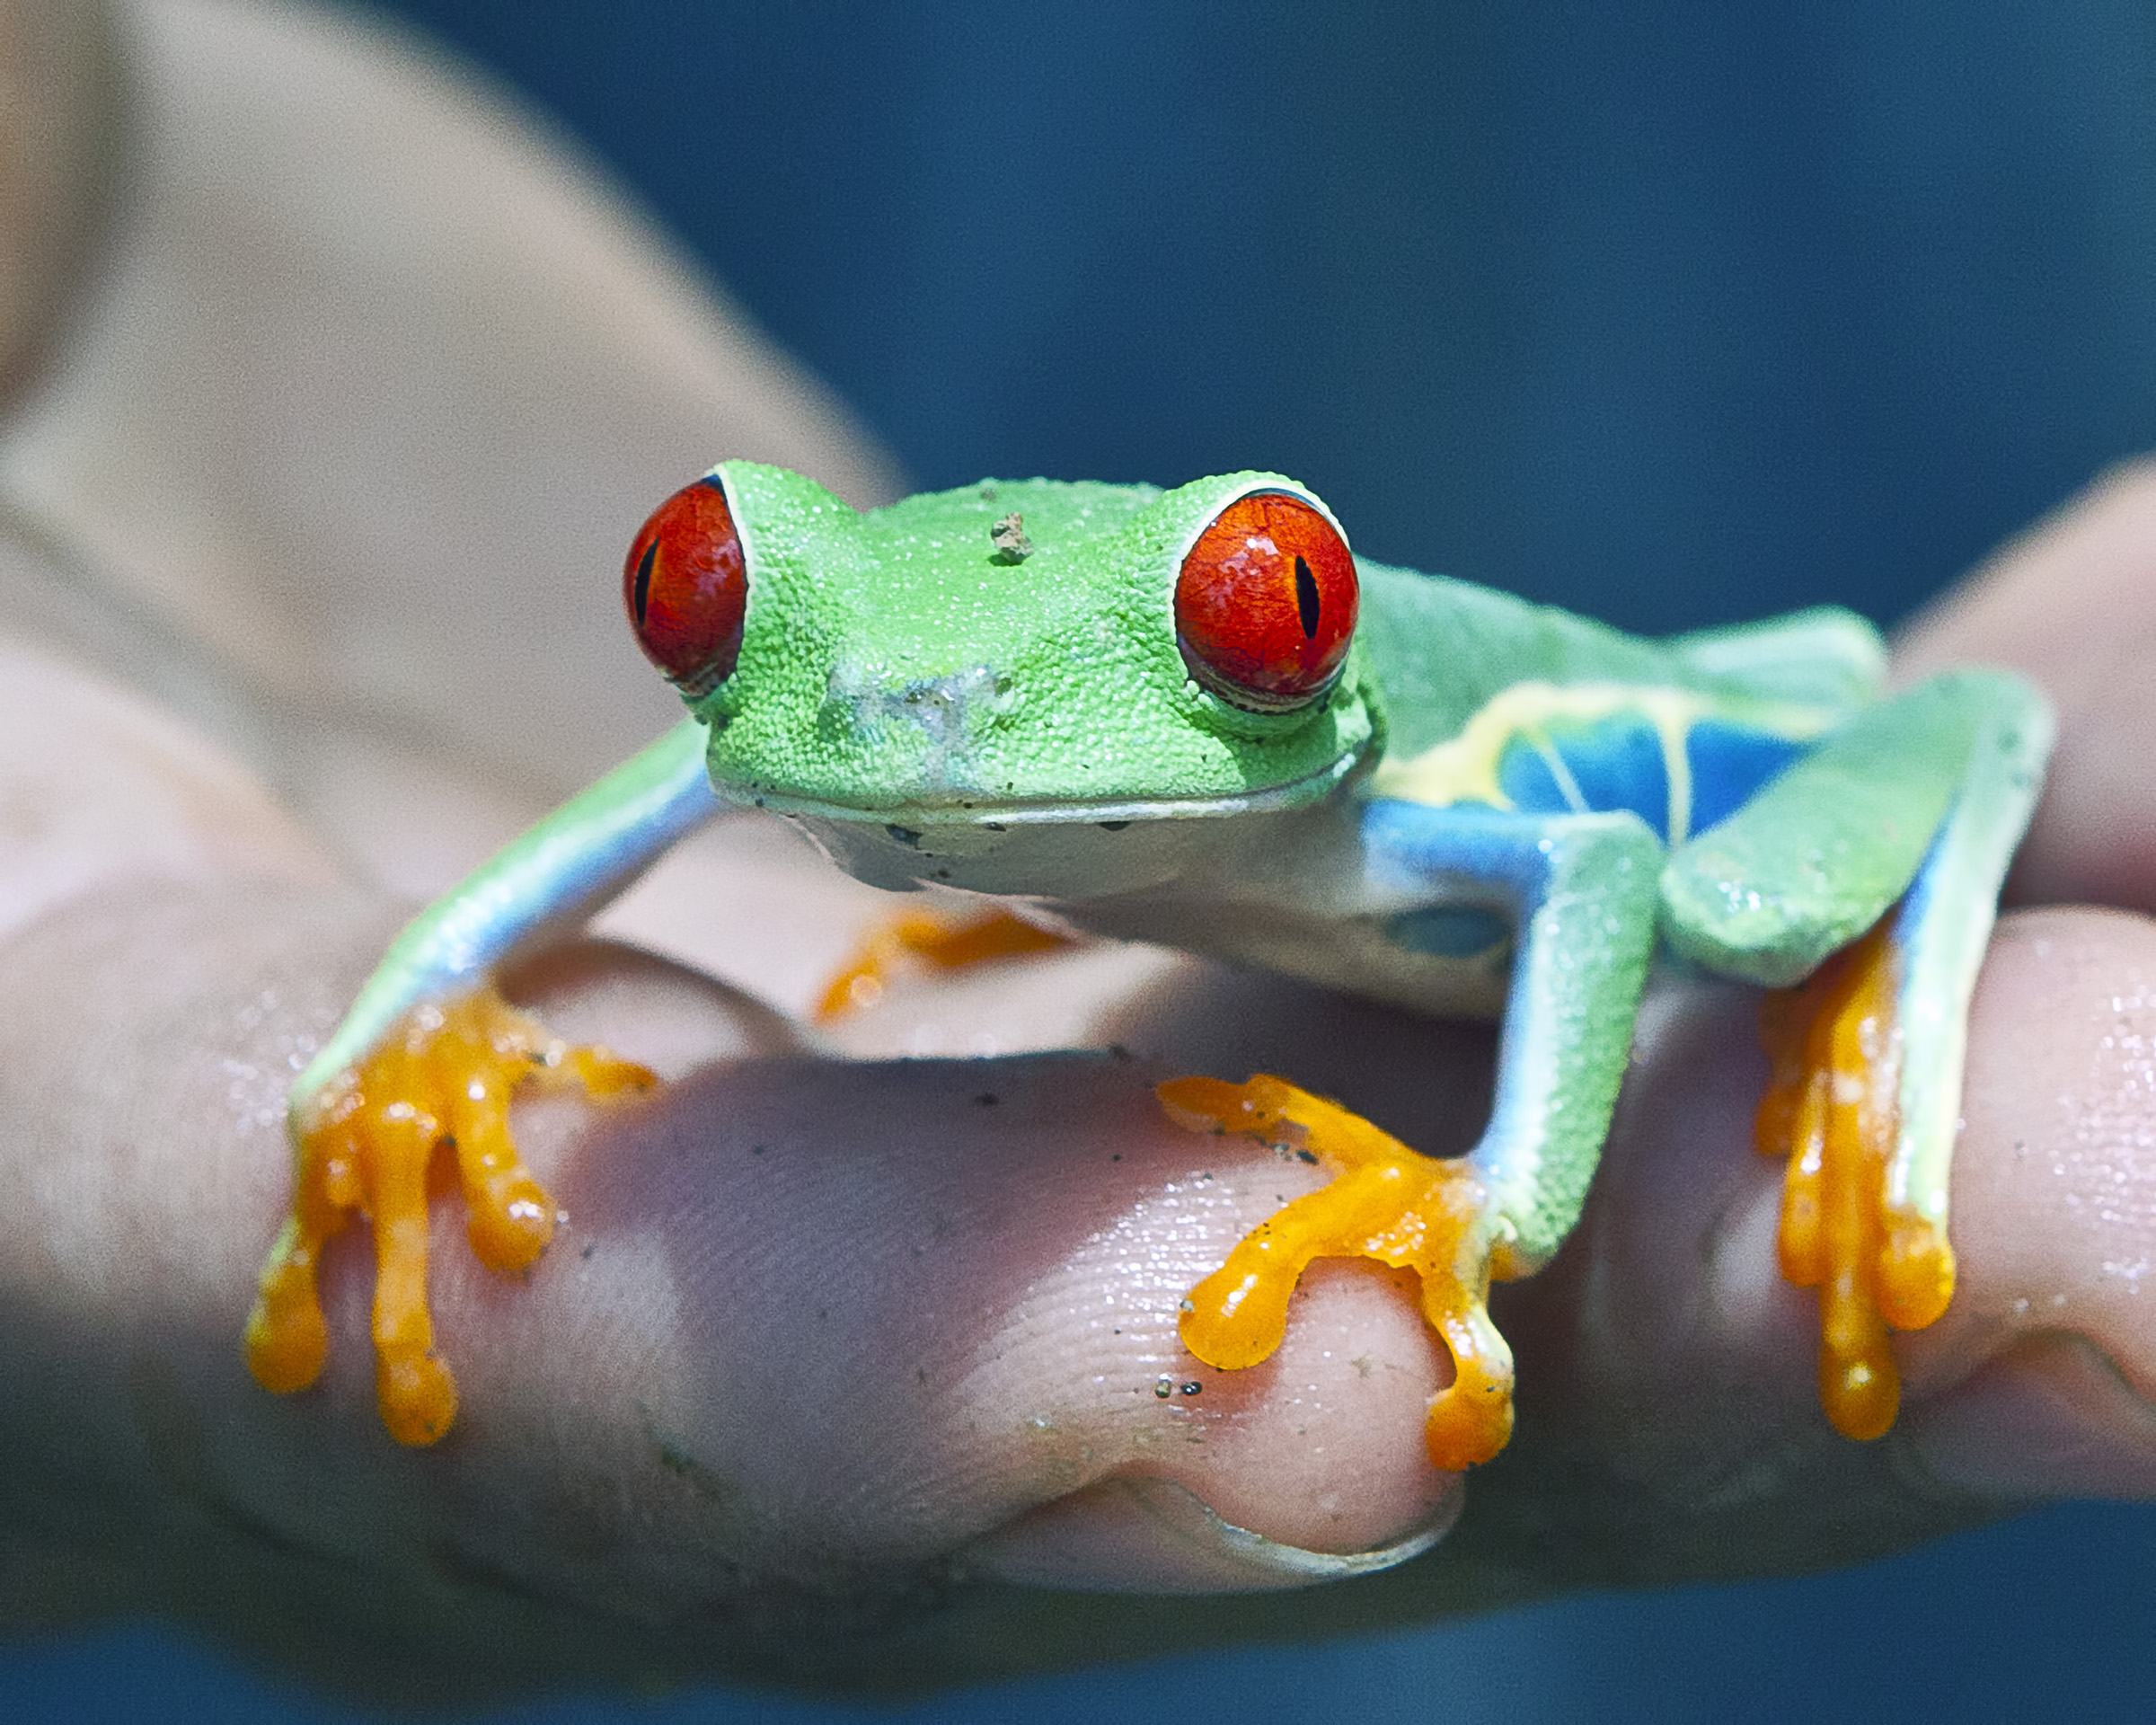 Frog, Amphibian, Rica, Lovely, Natural, HQ Photo